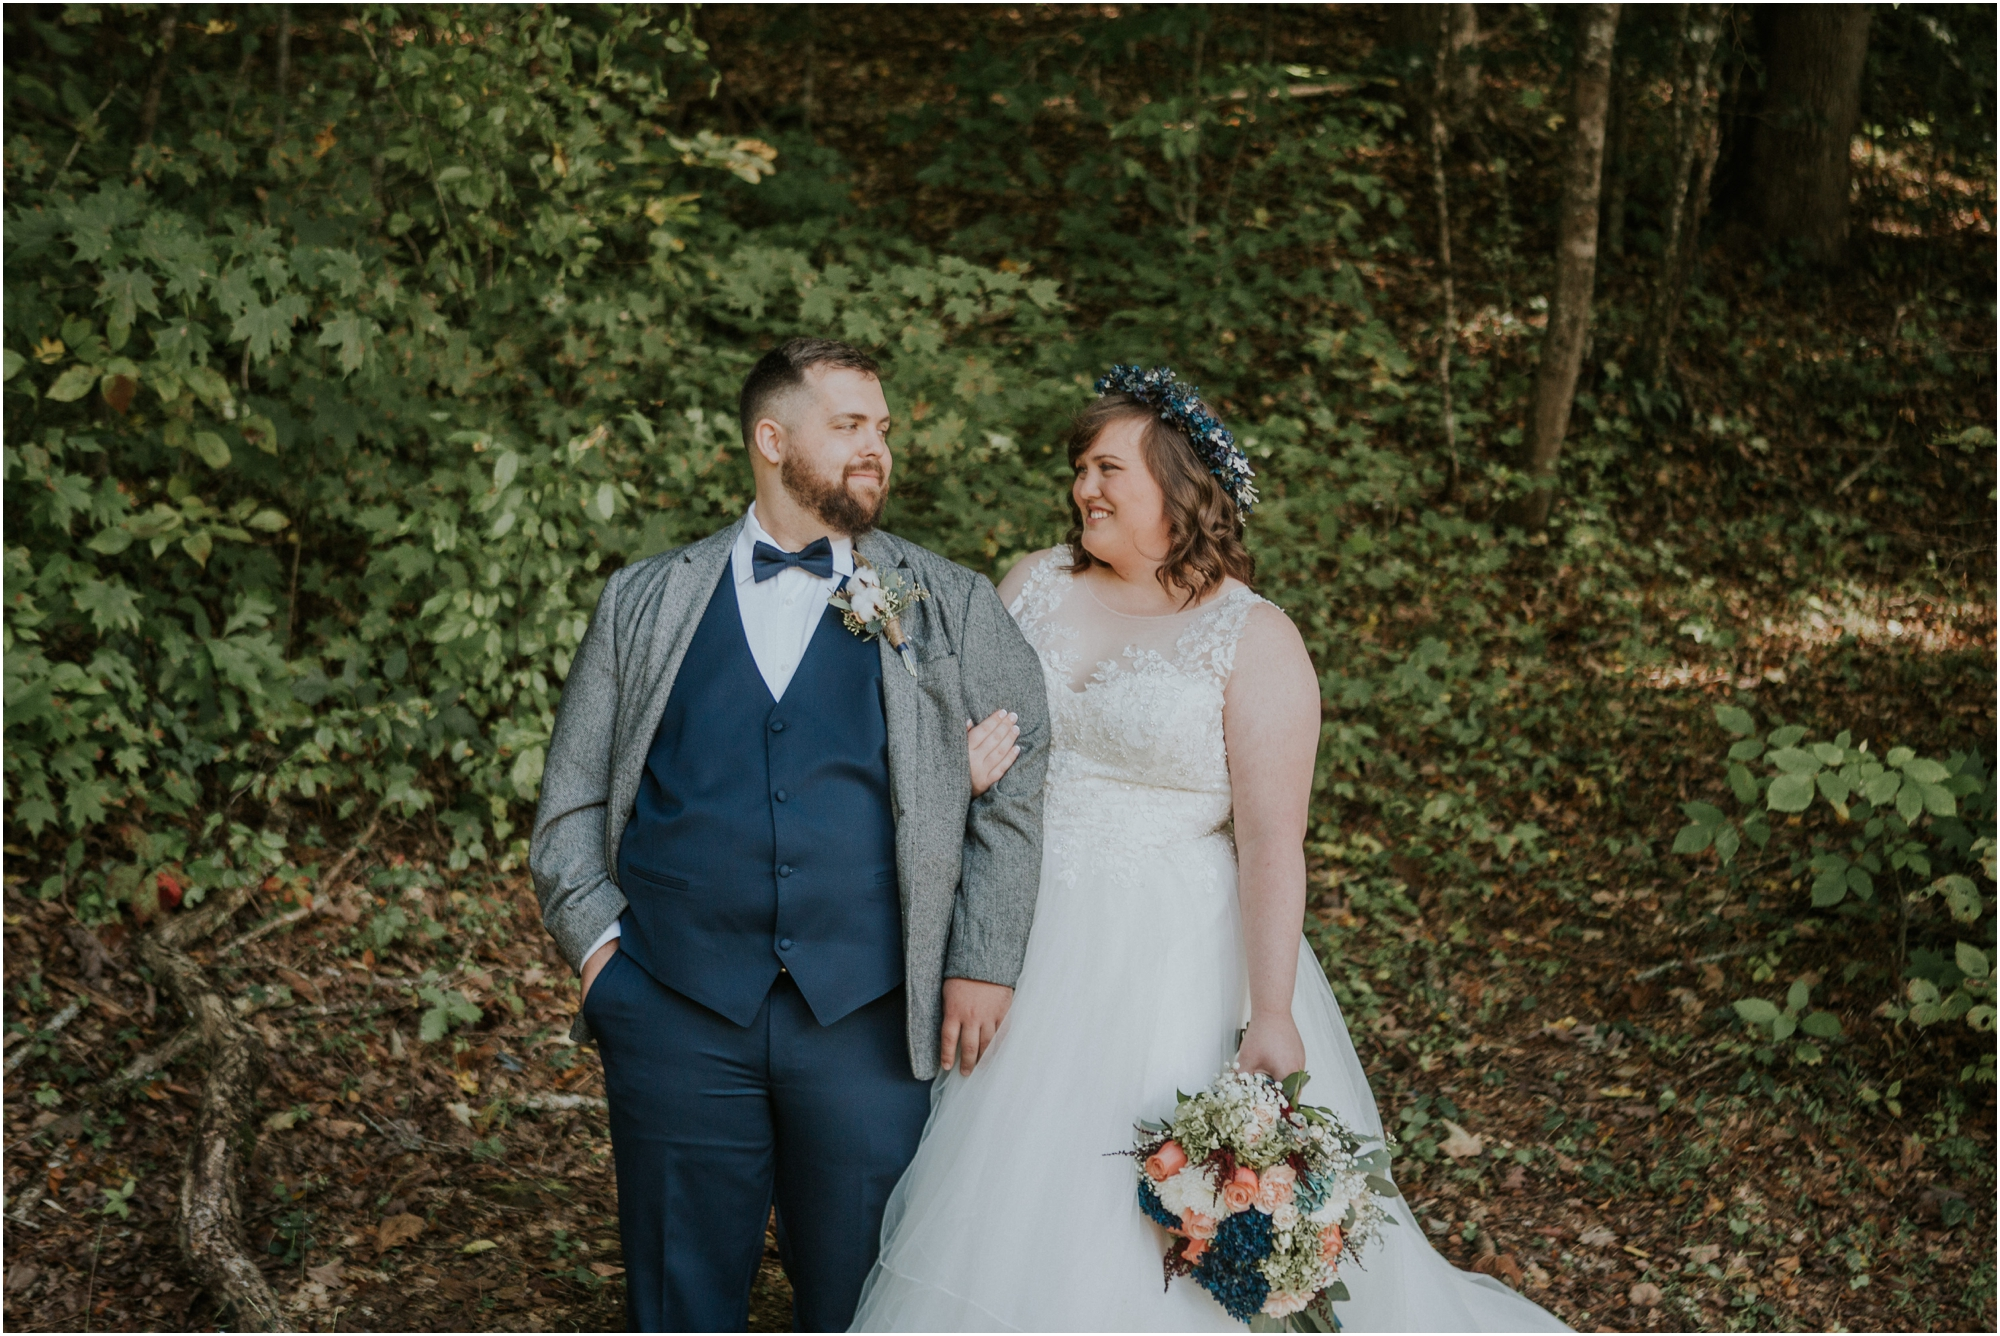 caryville-robbins-middle-tennessee-intimate-cozy-fall-navy-rustic-backyard-wedding_0049.jpg